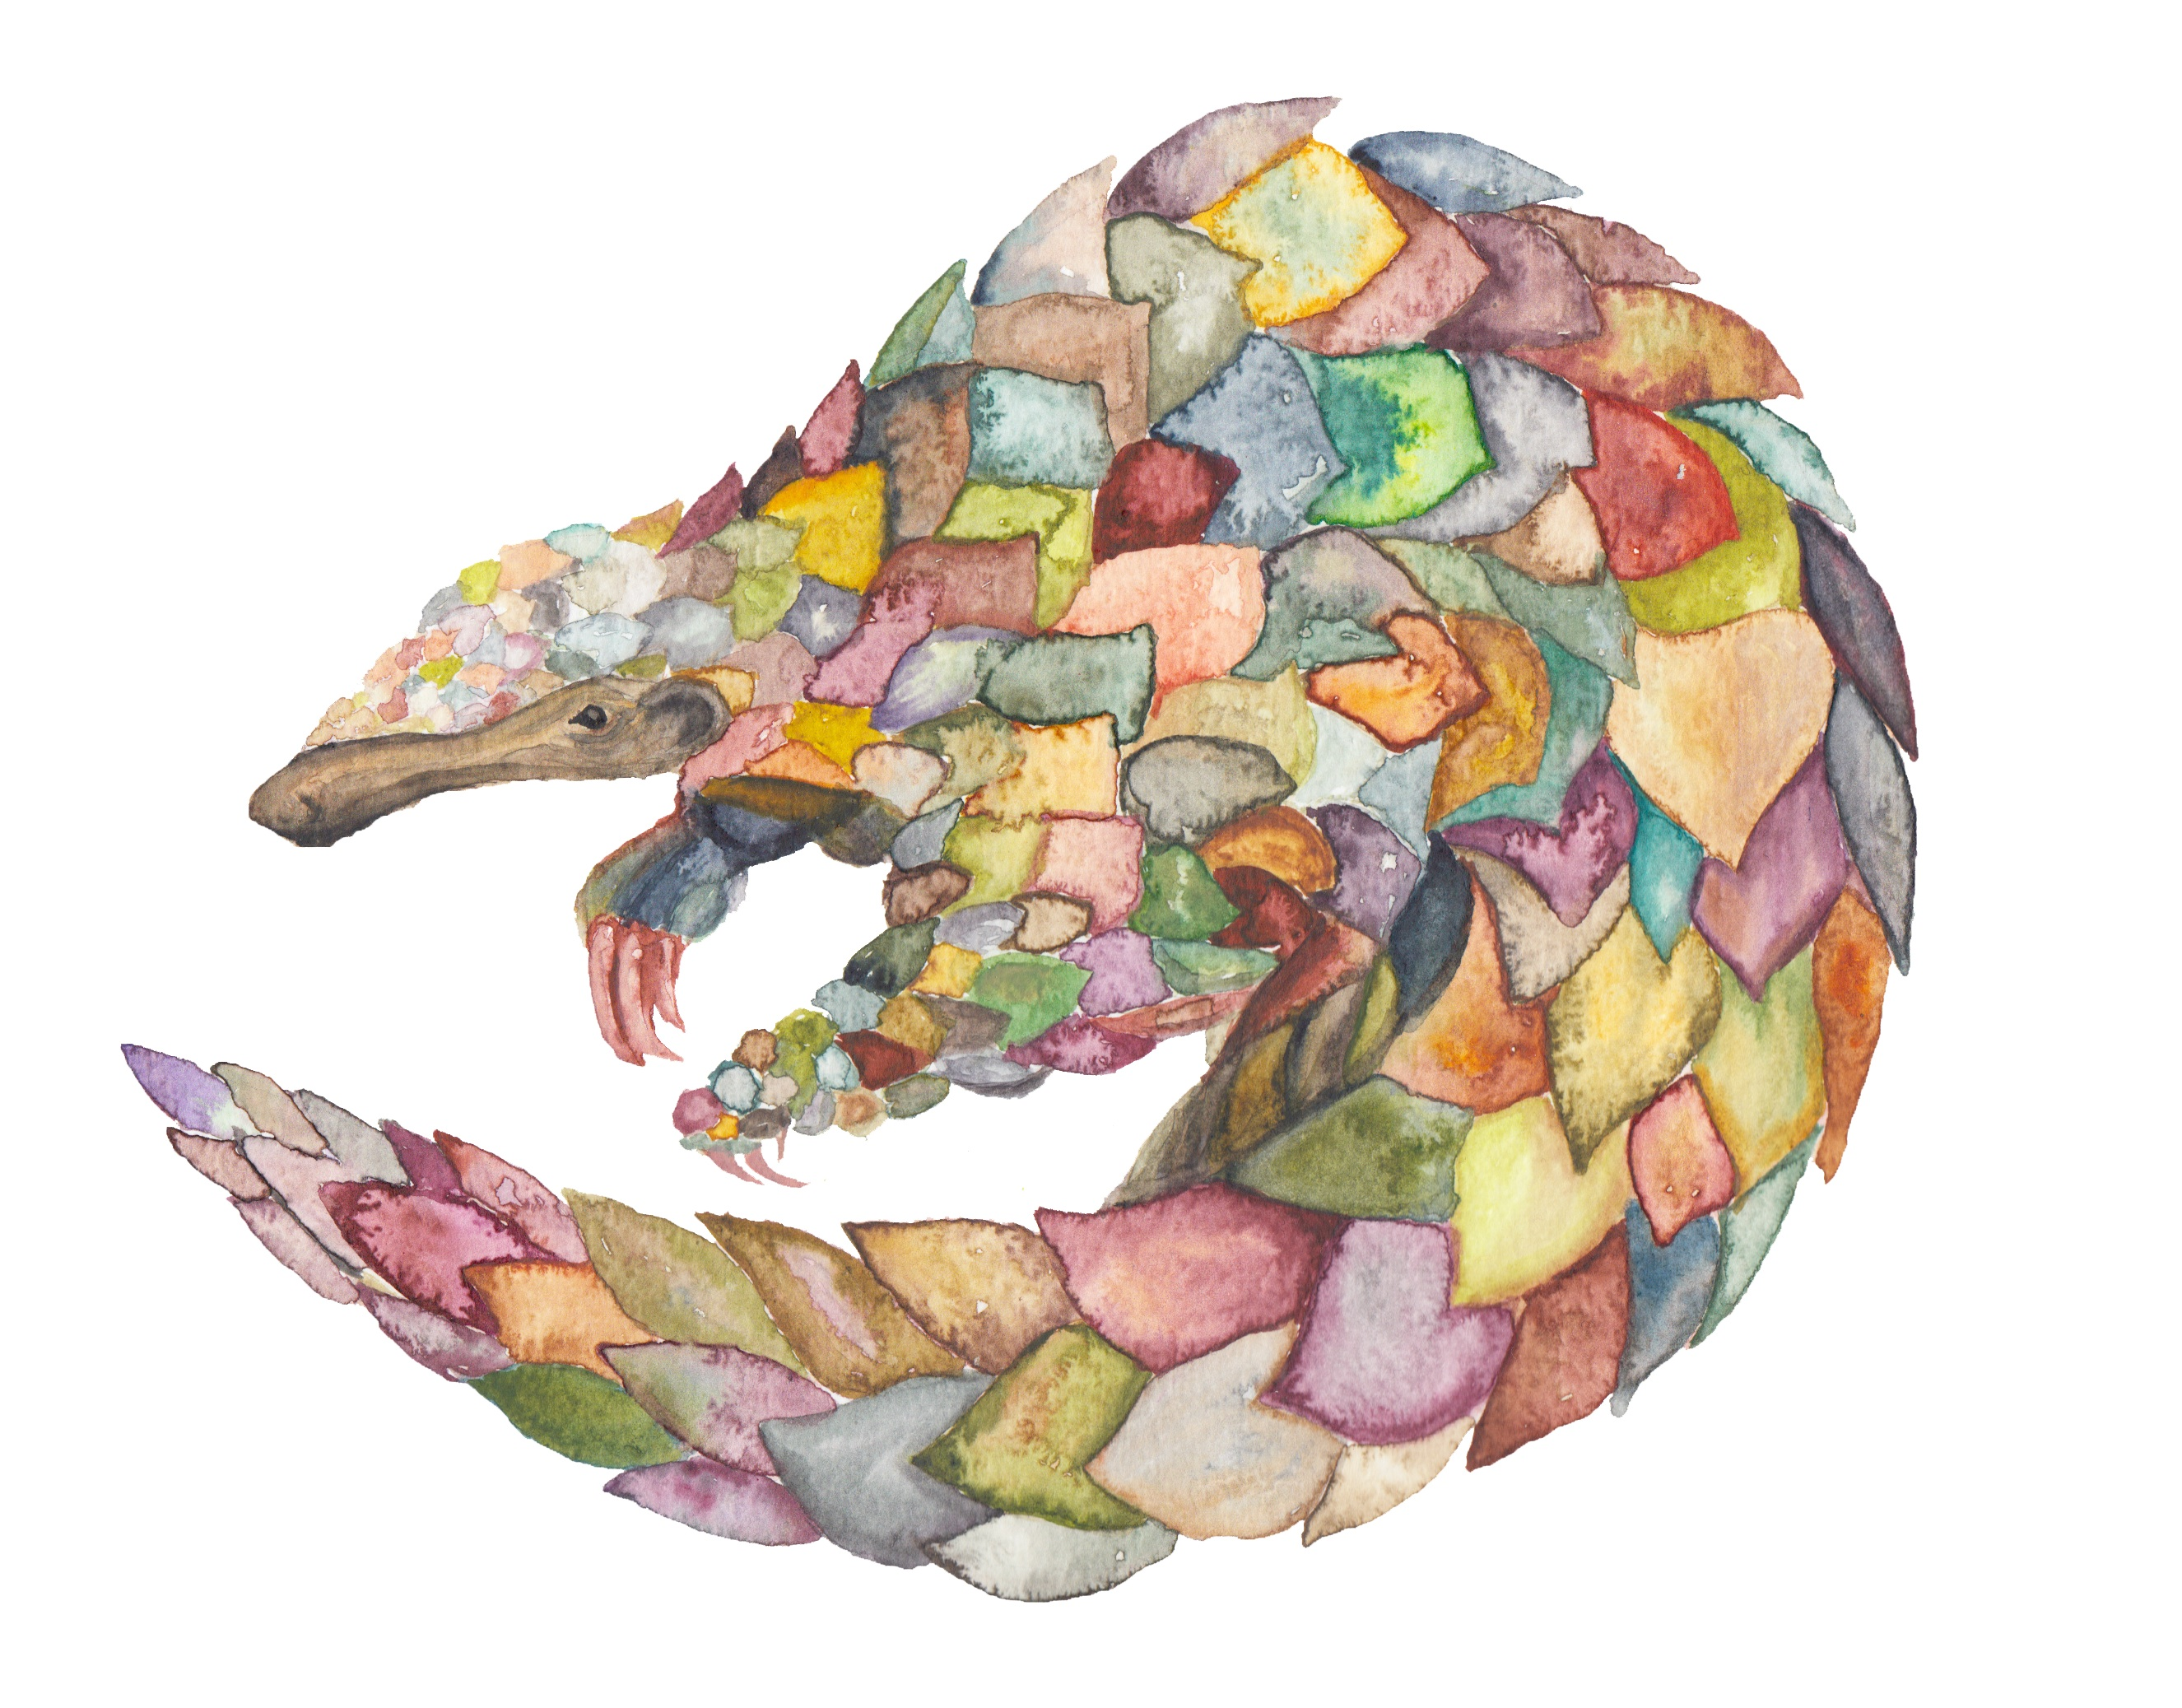 Pangolin by originalizzie